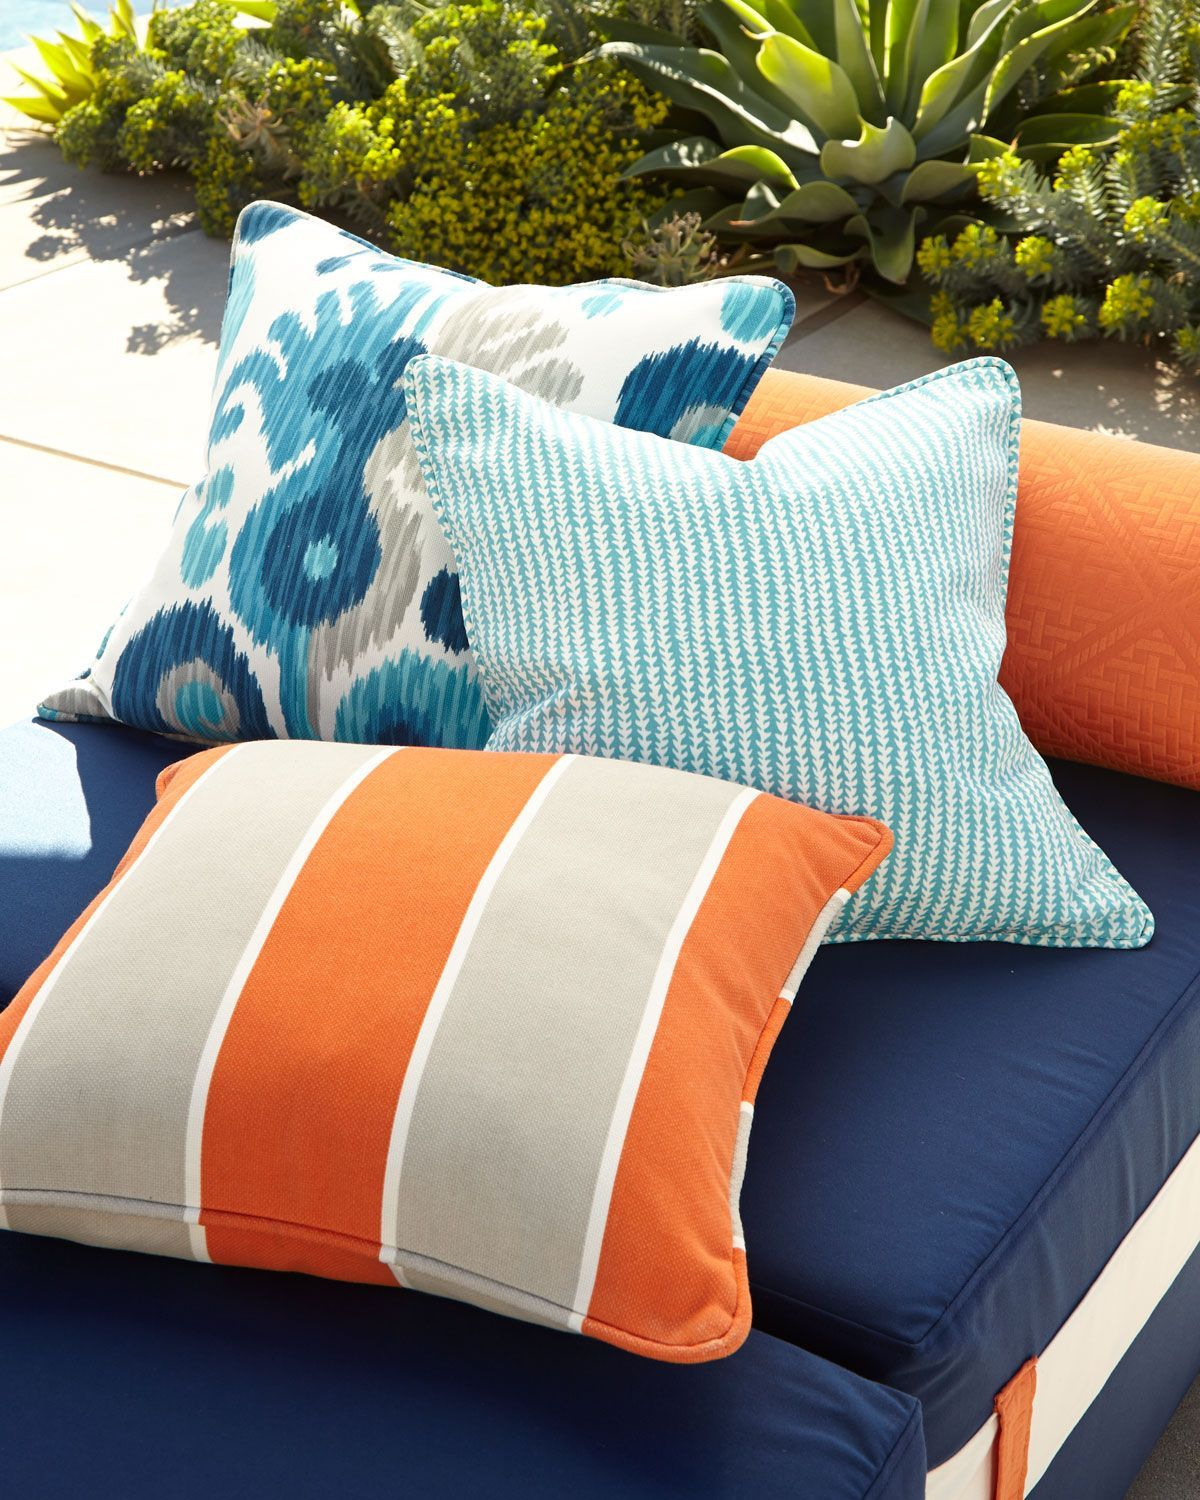 21 Totally Cool Navy Patio Decor That Will Give You Fab Patio Ideas Blue Patio Decor Blue Patio Outdoor Pillows